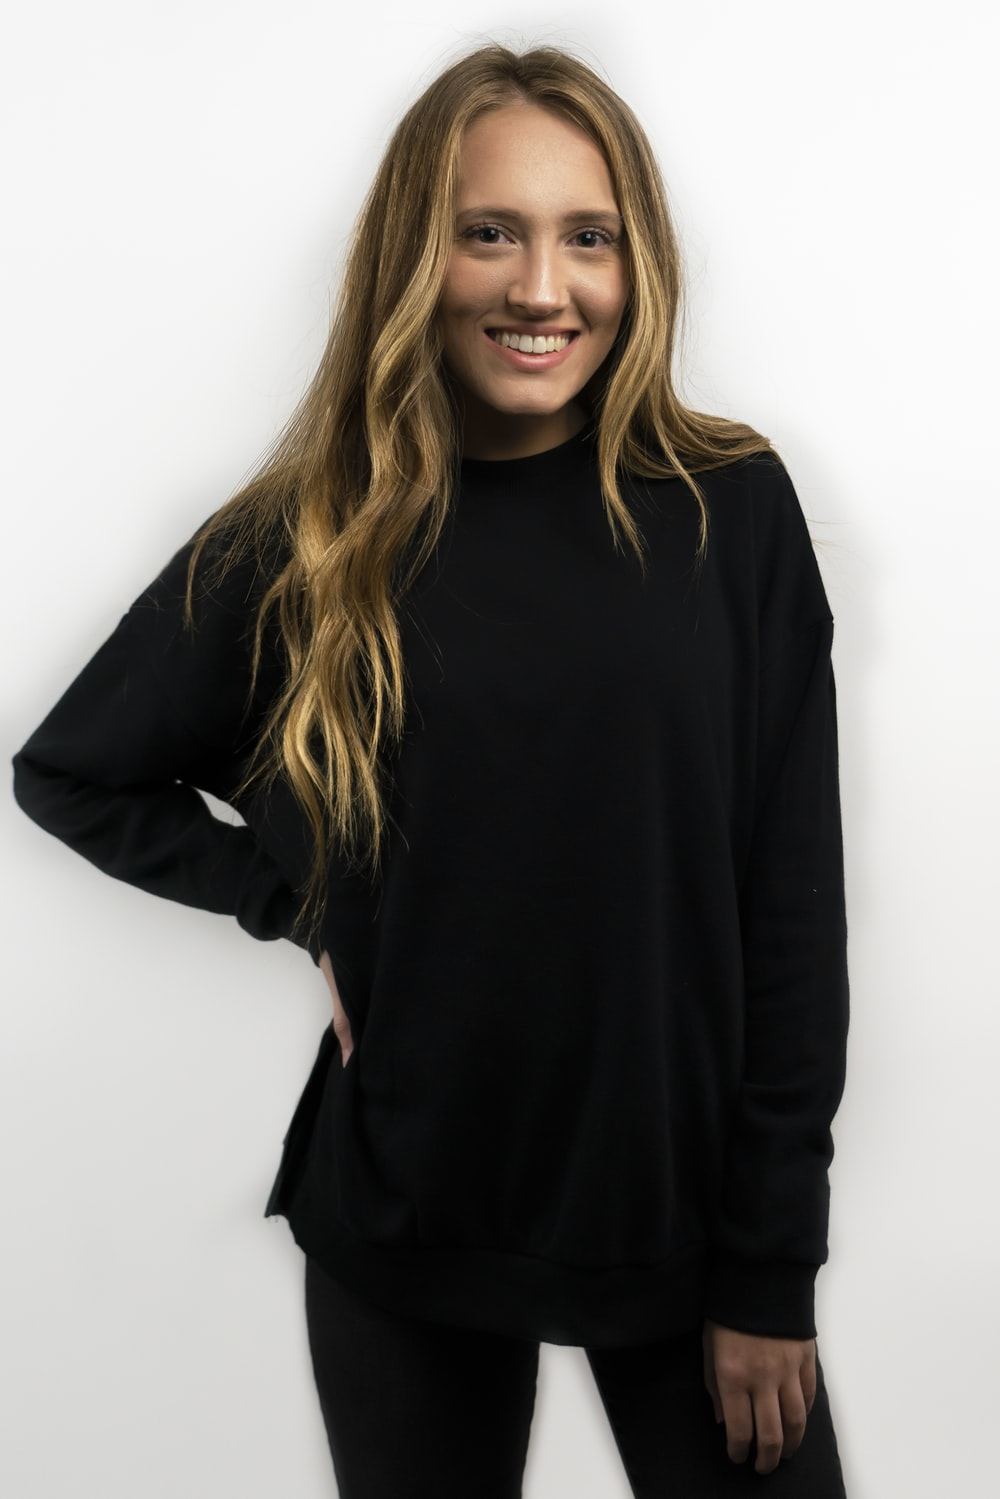 woman wearing black sweater